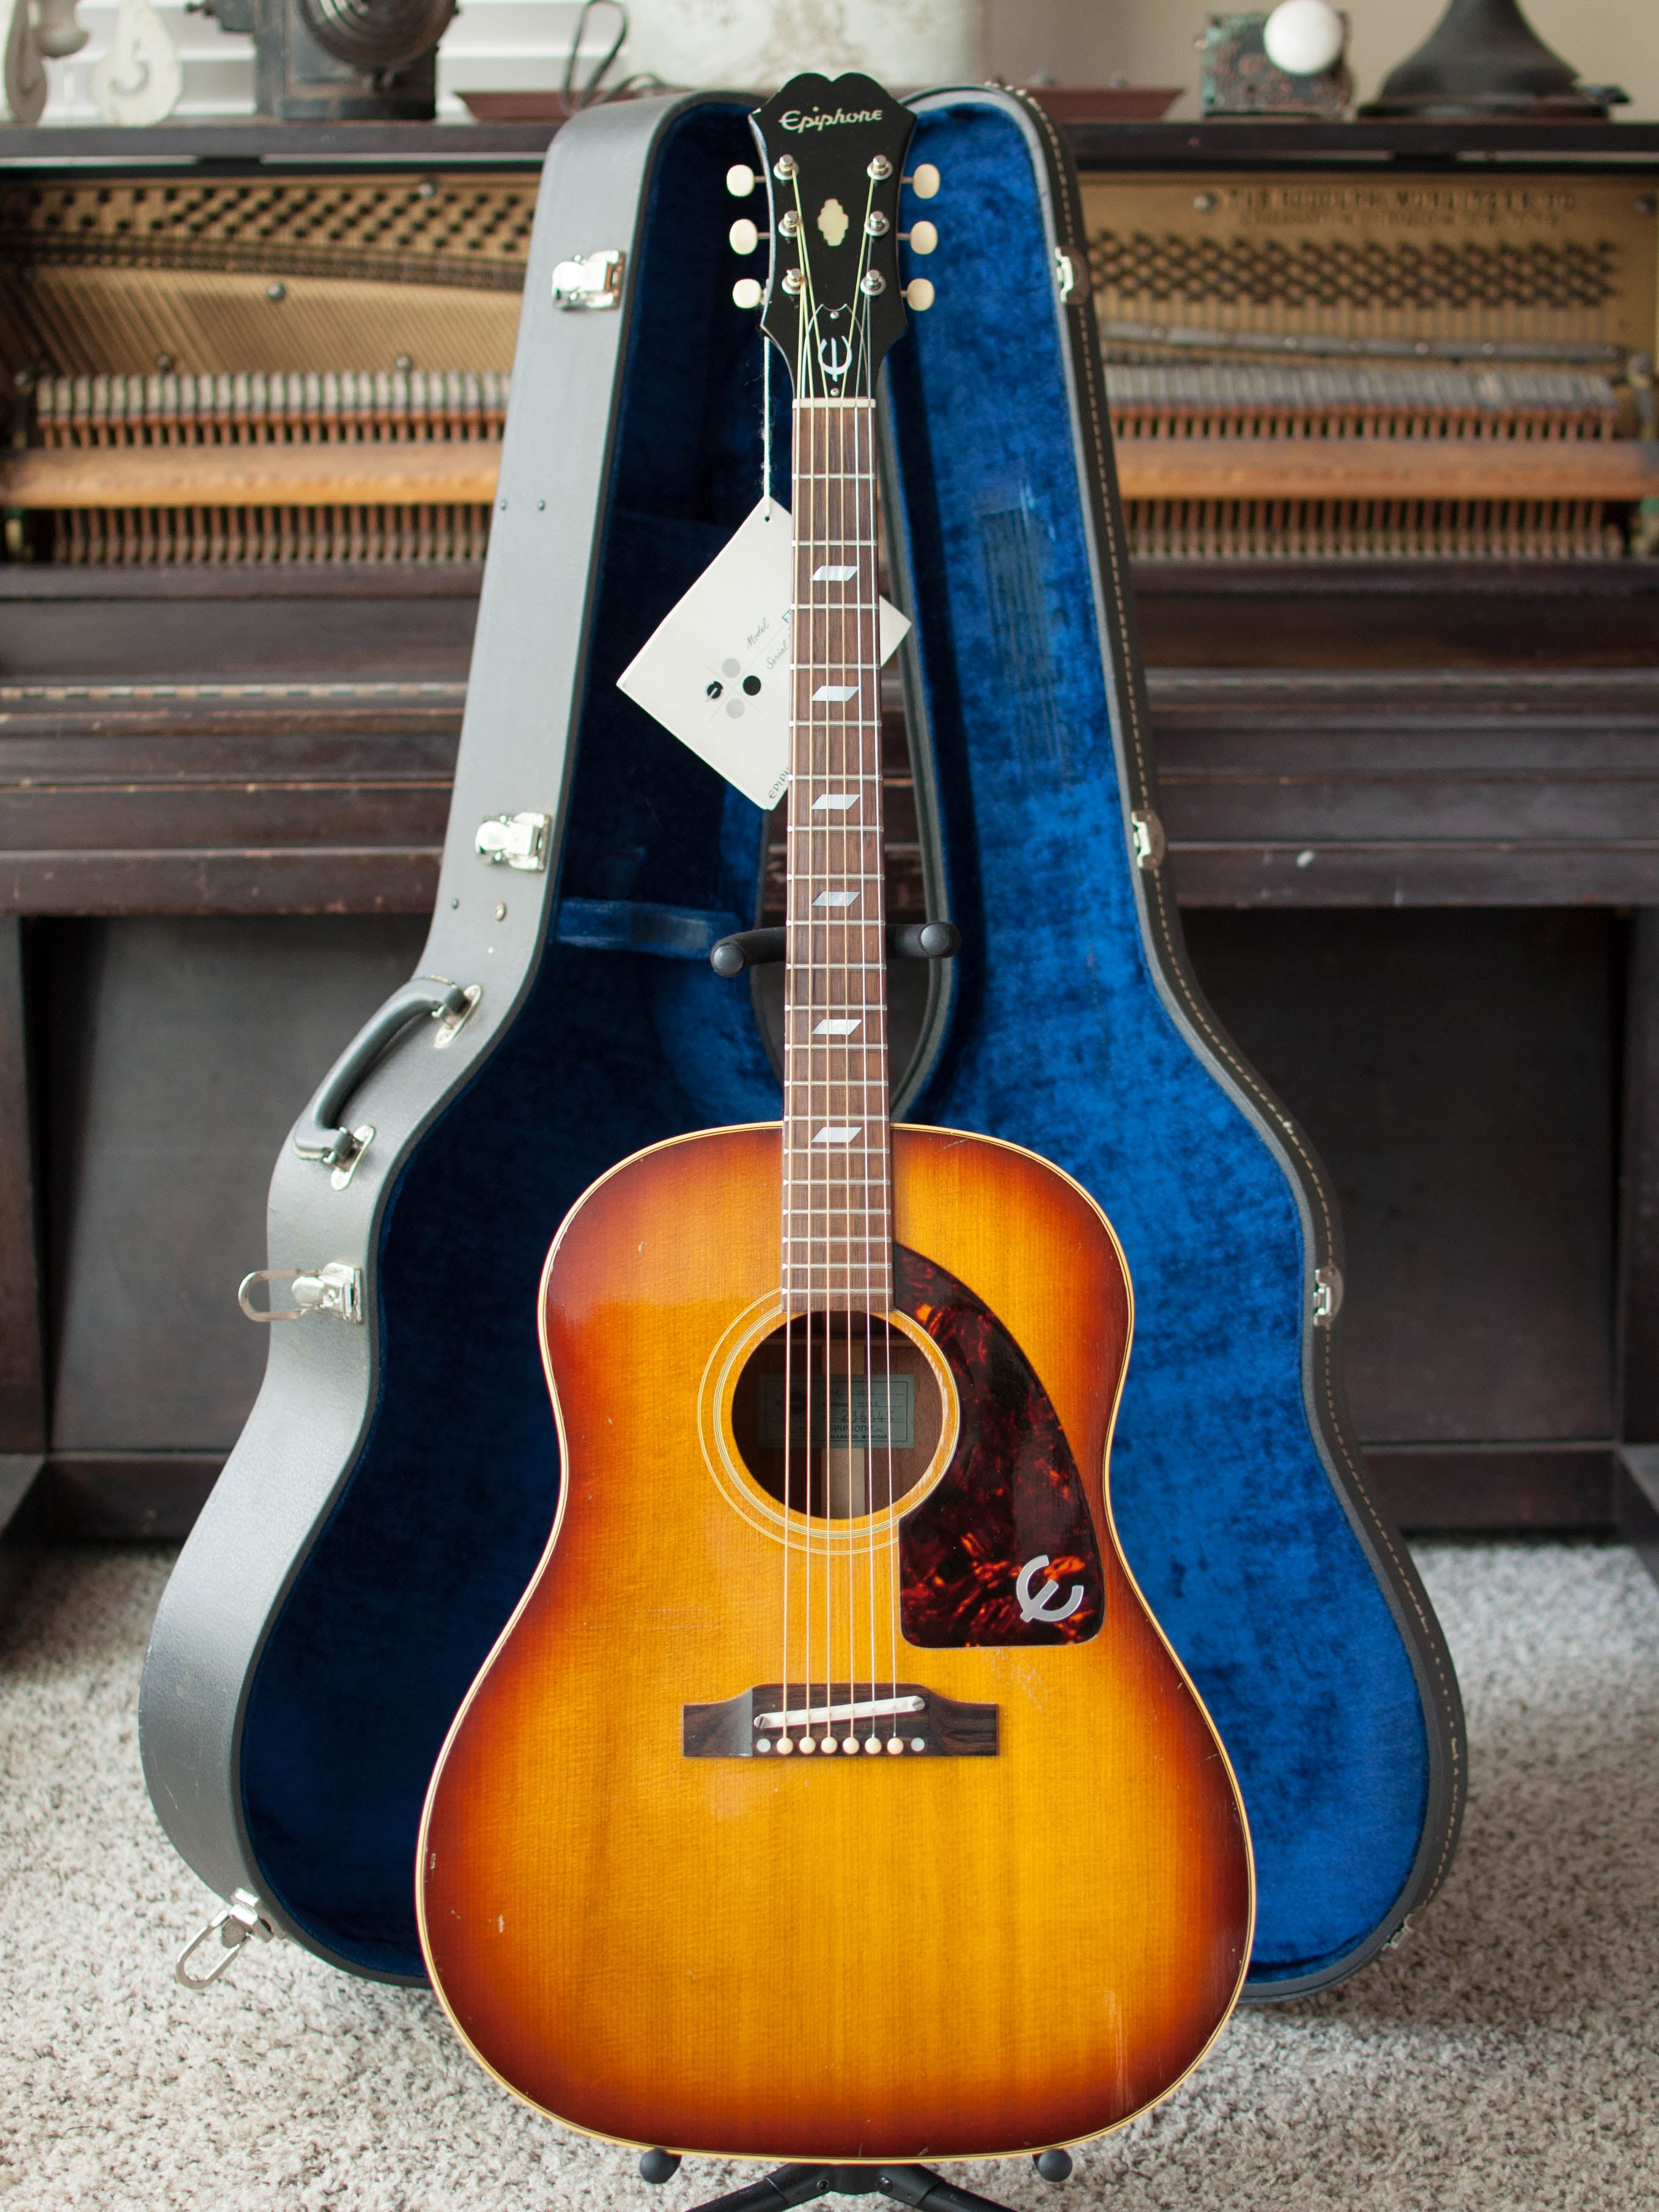 Vintage 1964 Epiphone FT-79 Texan guitar